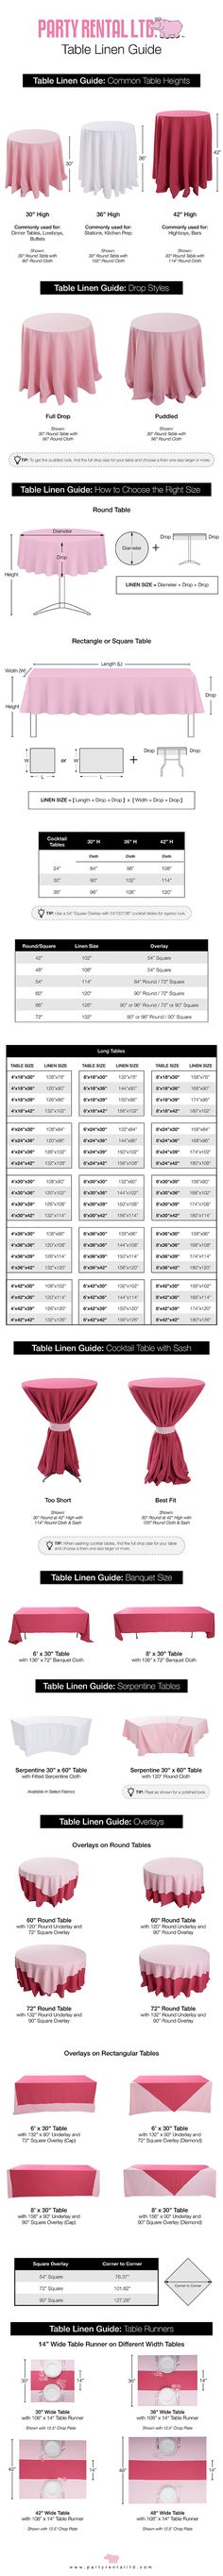 The Ultimate Guide to Table Linen Sizes is your guide you choosing tablecloth sizes for weddings and events. Wedding Tablecloths, Wedding Table Linens, Wedding Decor, Wedding Tips, Wedding Events, Trendy Wedding, Weddings, Party Planning, Wedding Planning